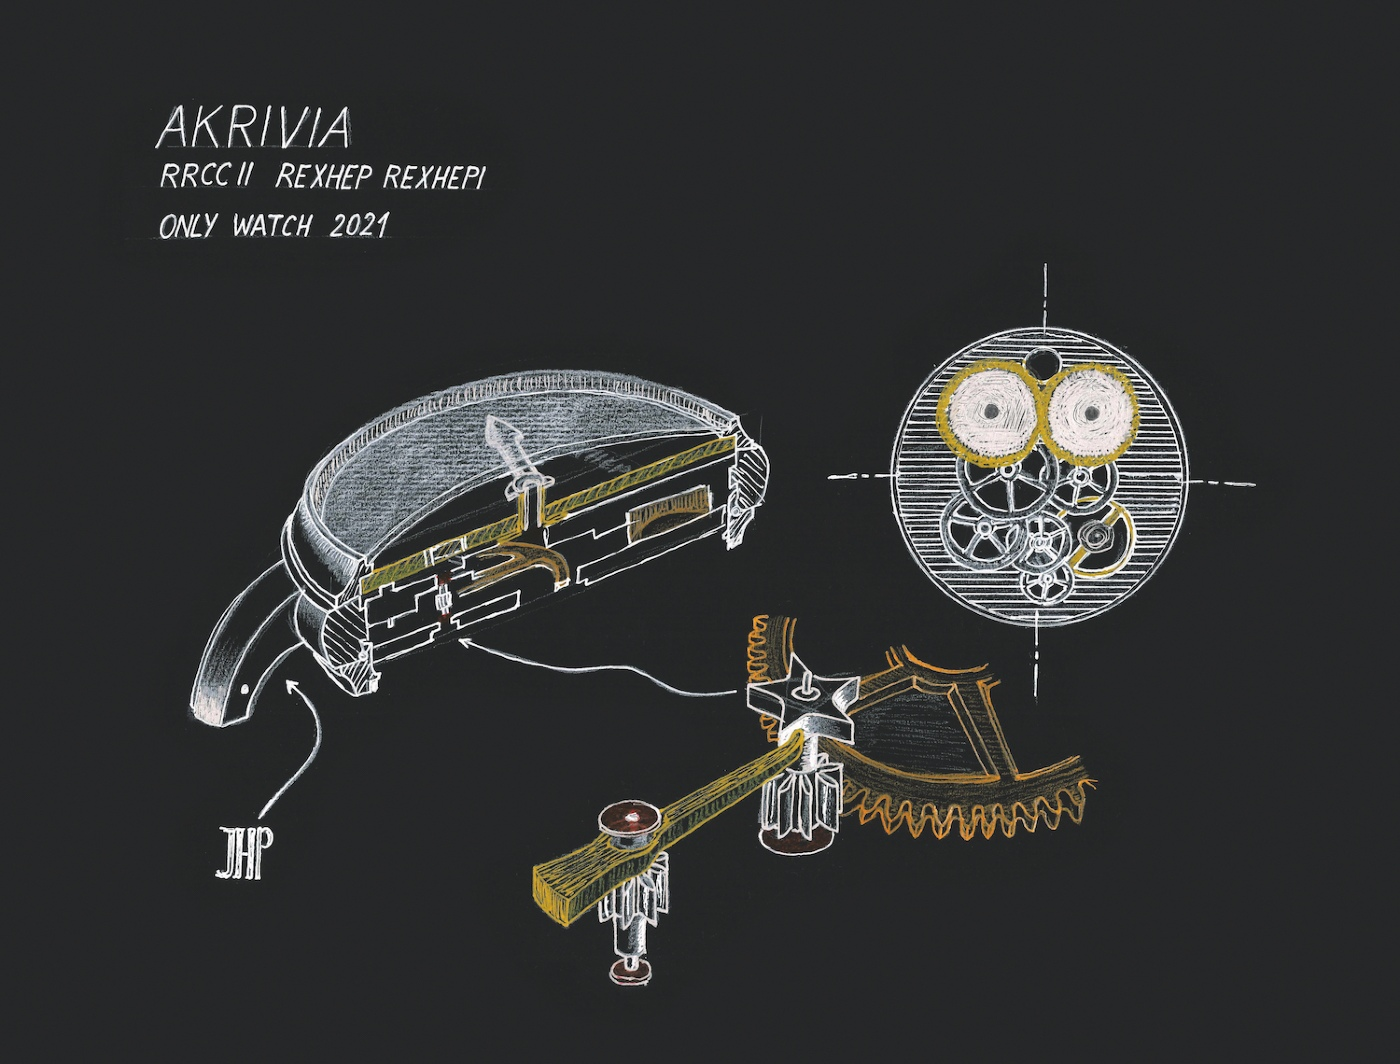 AKRIVIA only watch 2021